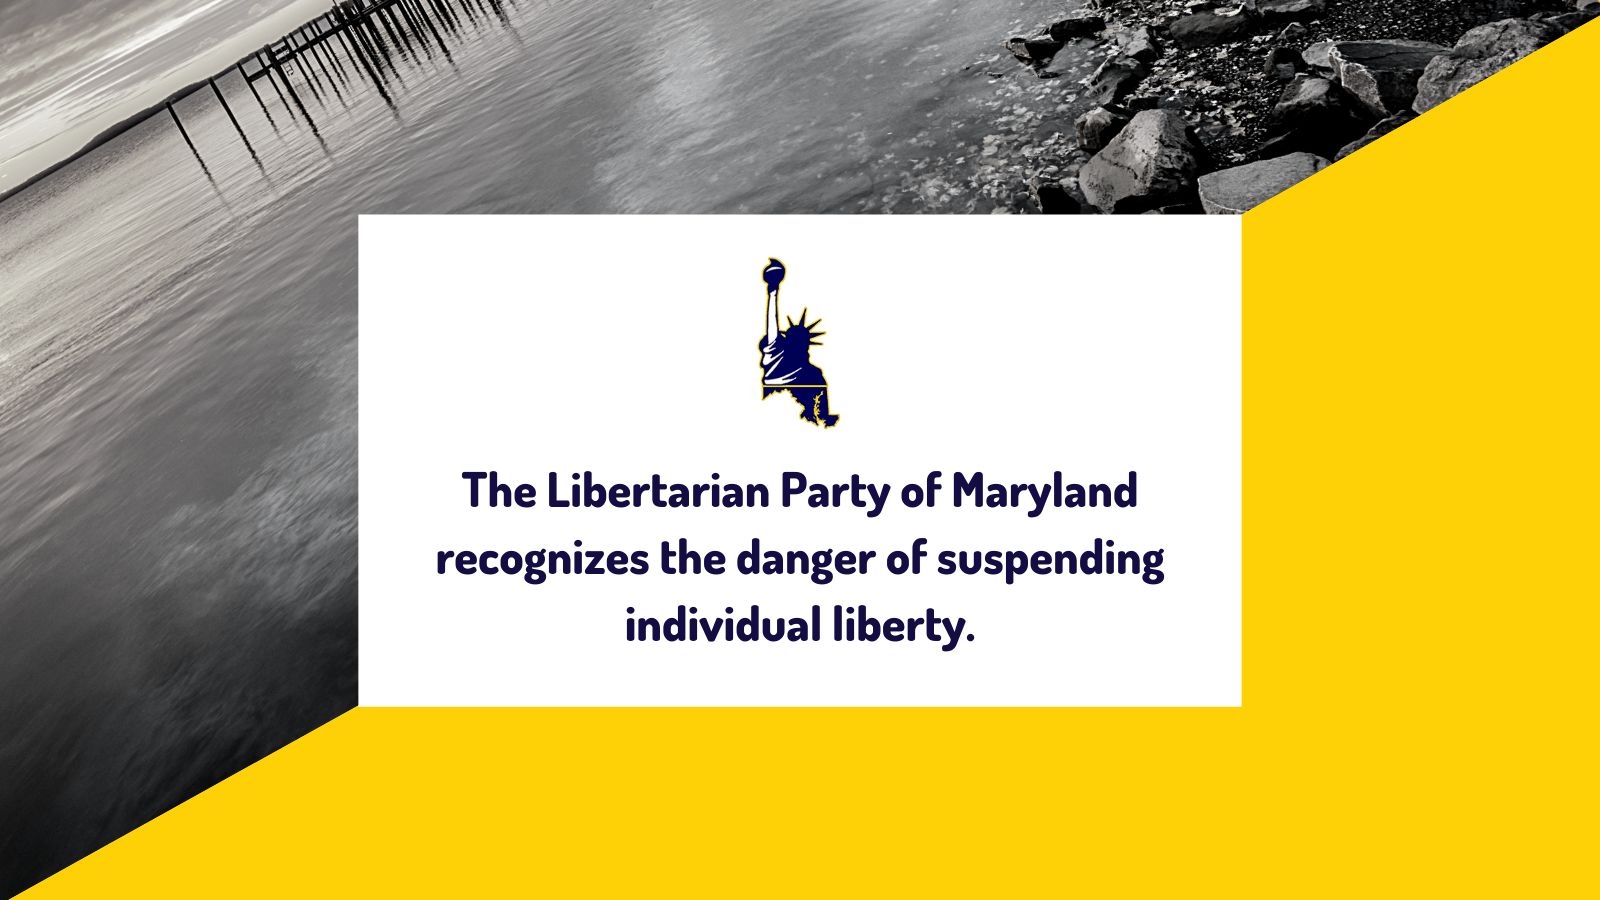 The Libertarian Party of Maryland recognizes the danger of suspending individual liberty.